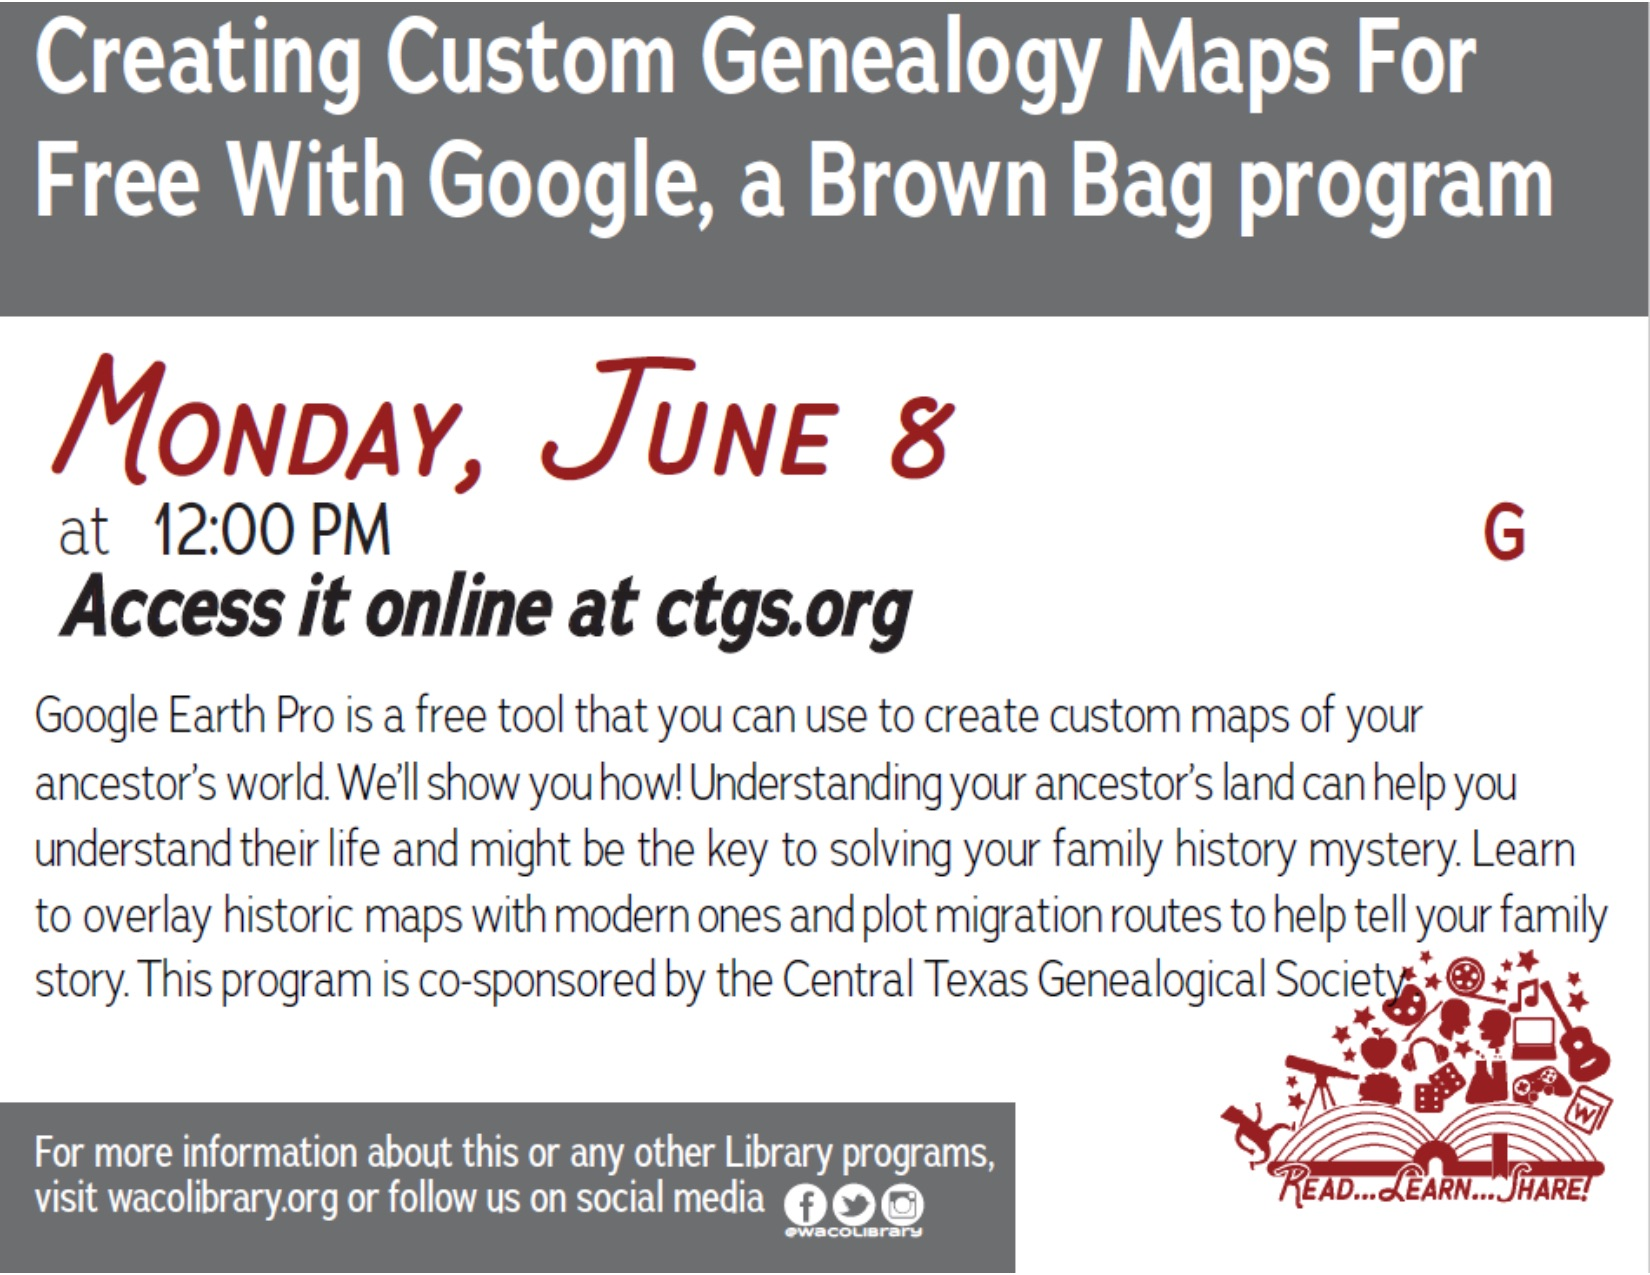 Creating Custom Genealogy Maps for Free with Google